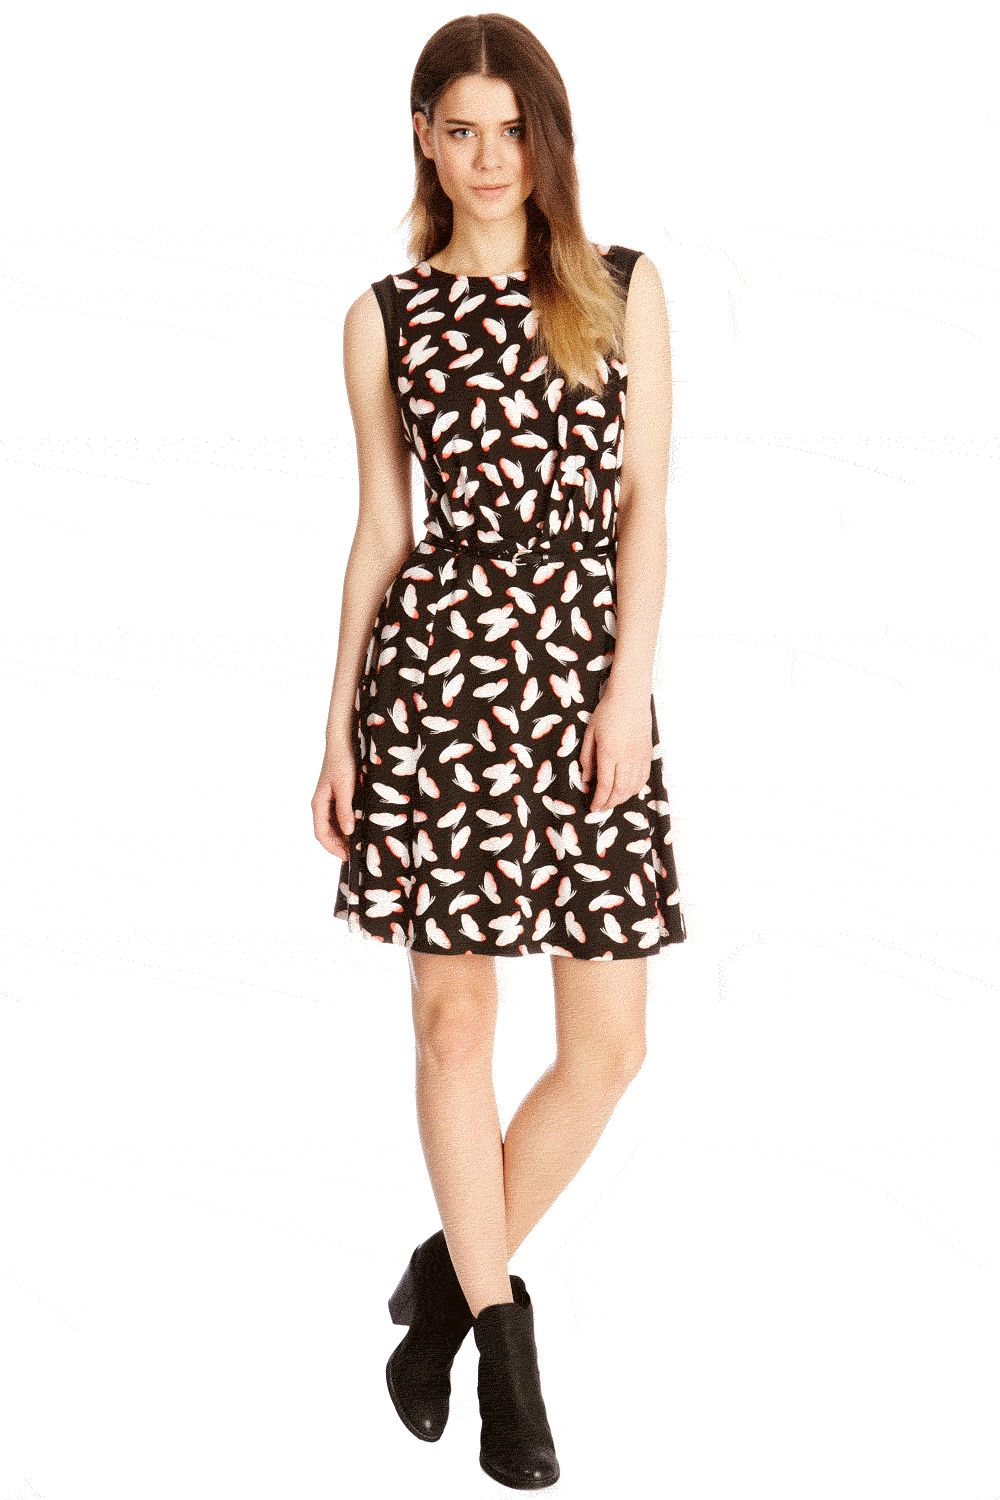 Deco butterfly skater dress